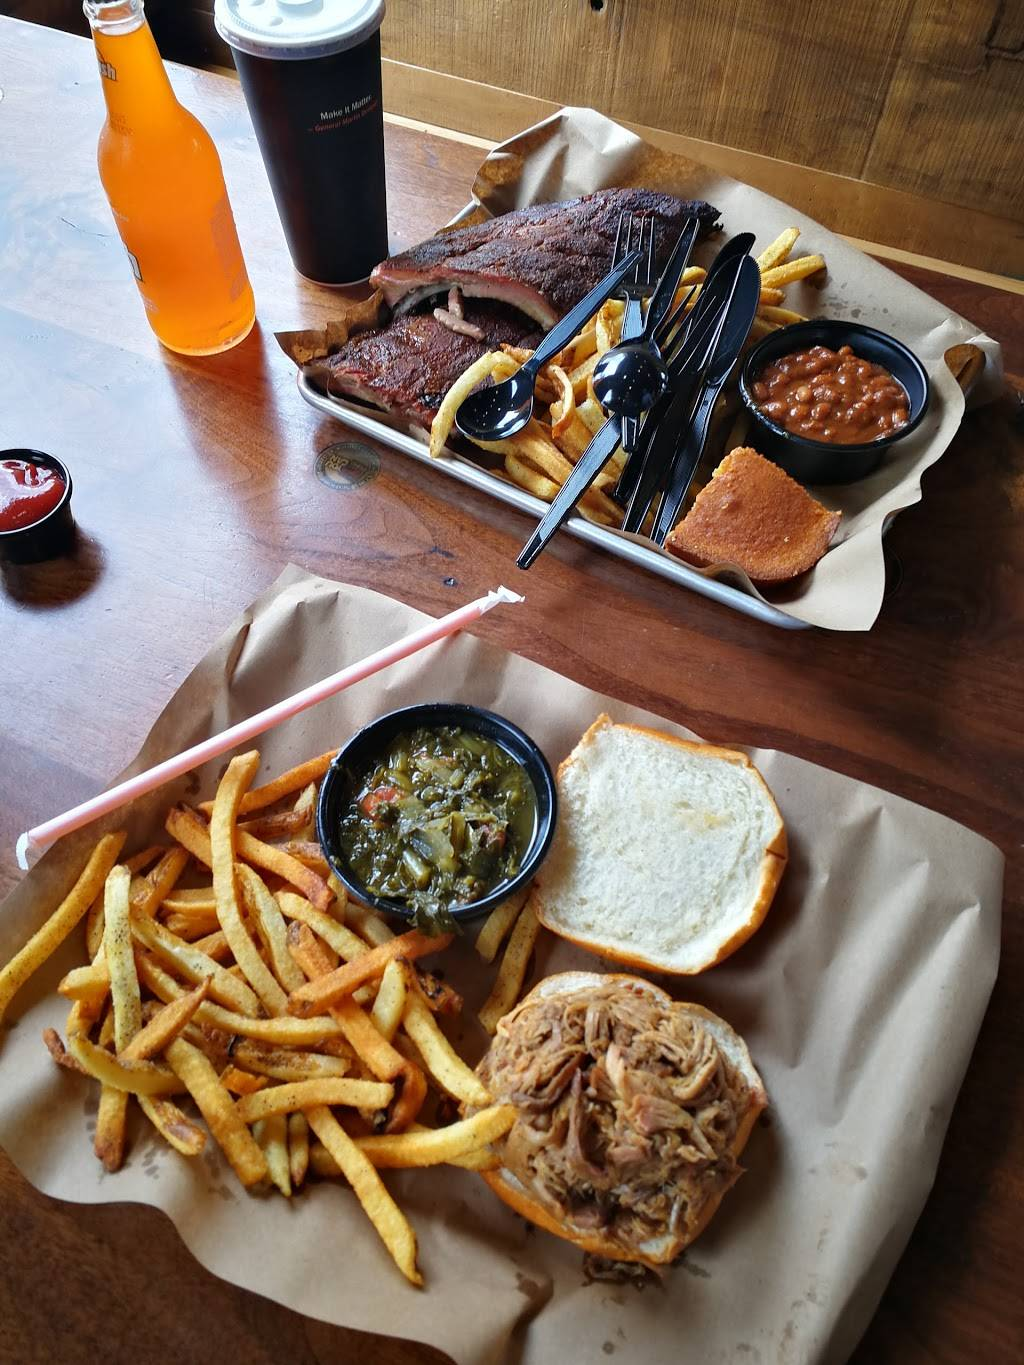 MISSION BBQ | restaurant | 6270 Columbia Crossing Cir, Columbia, MD 21045, USA | 4438326180 OR +1 443-832-6180